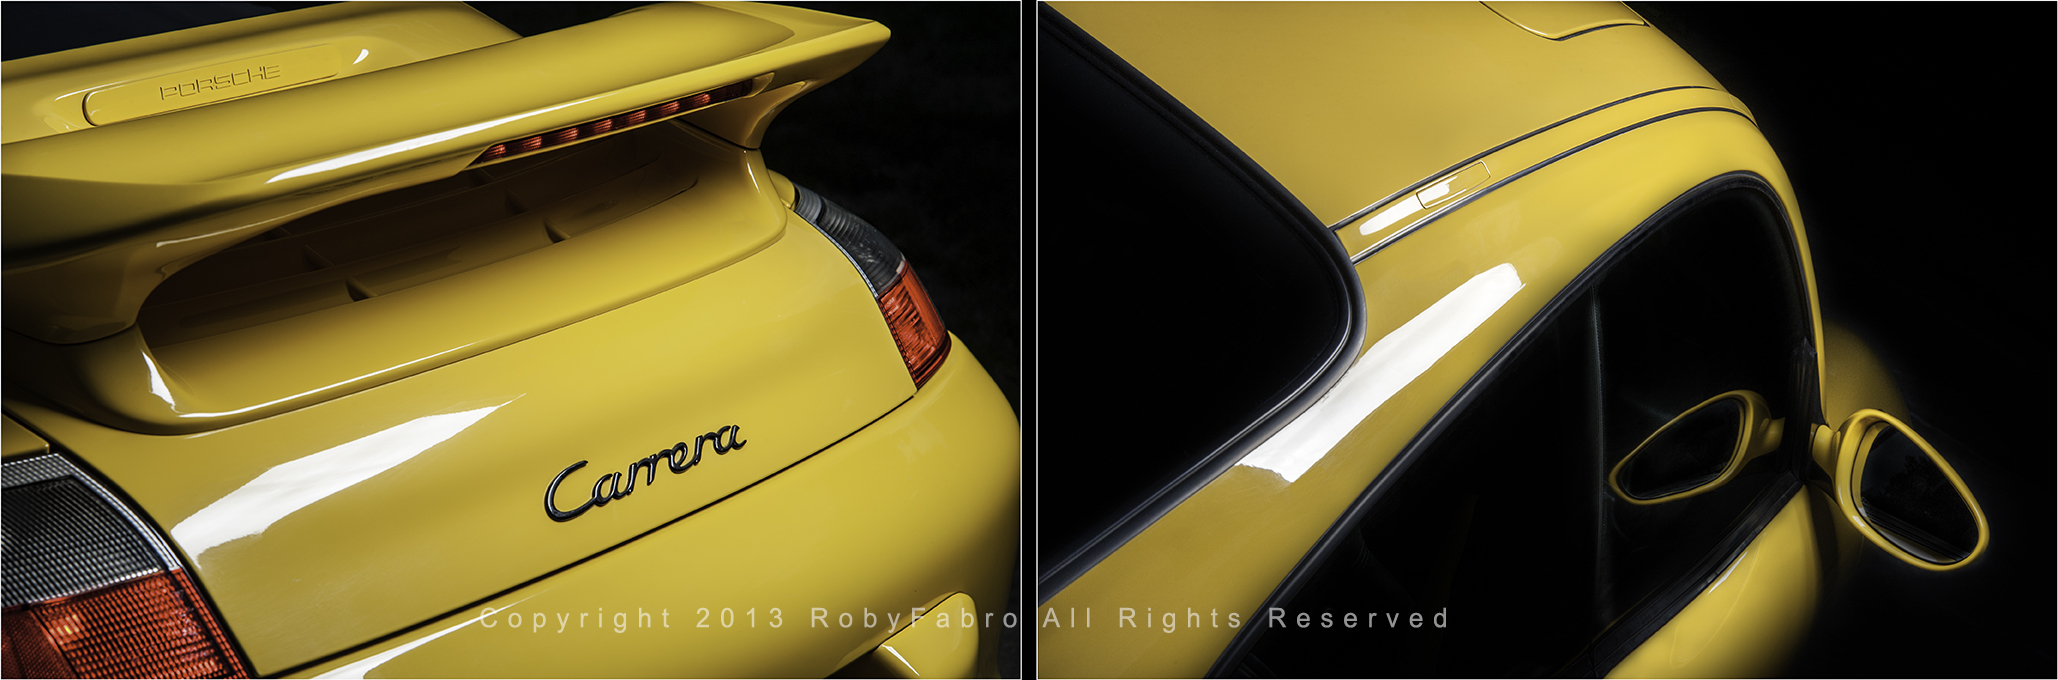 Porsche-Carrera-rear-and-side-view. Best Boston automotive photographers | RobyFabro